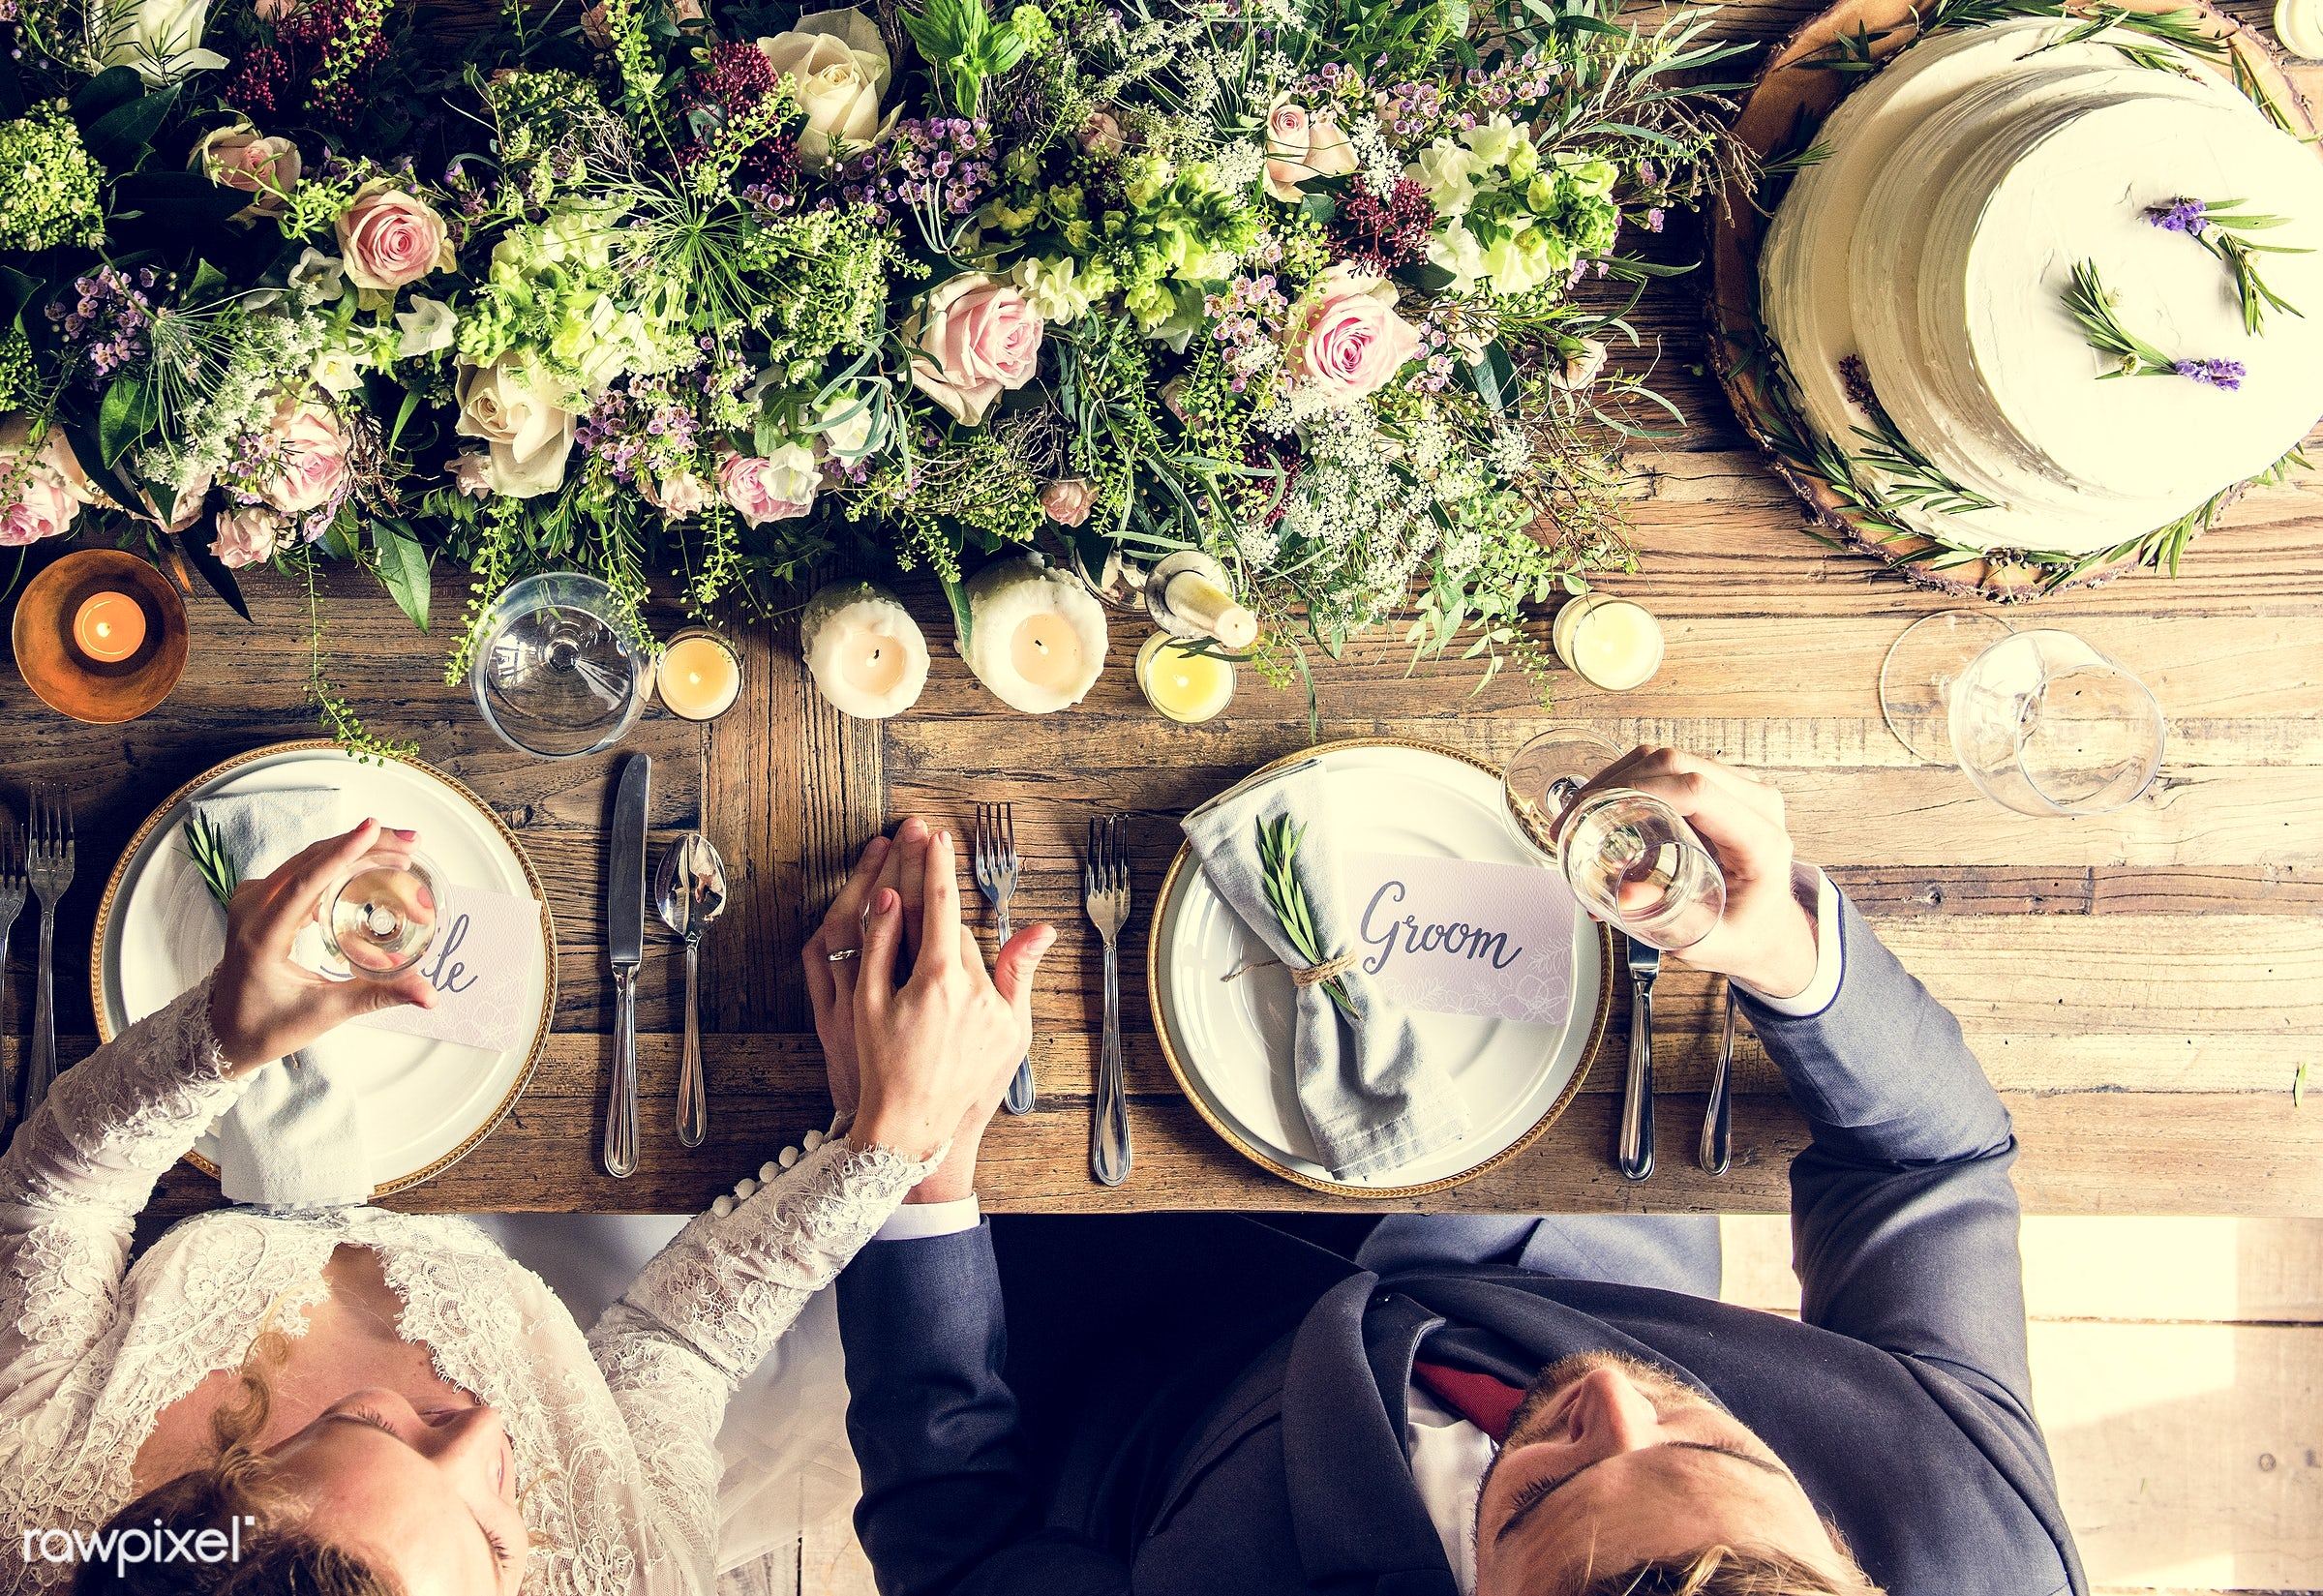 expression, person, holding, people, together, love, married, gather, woman, drink, flowers, wine, cake, happiness, table,...